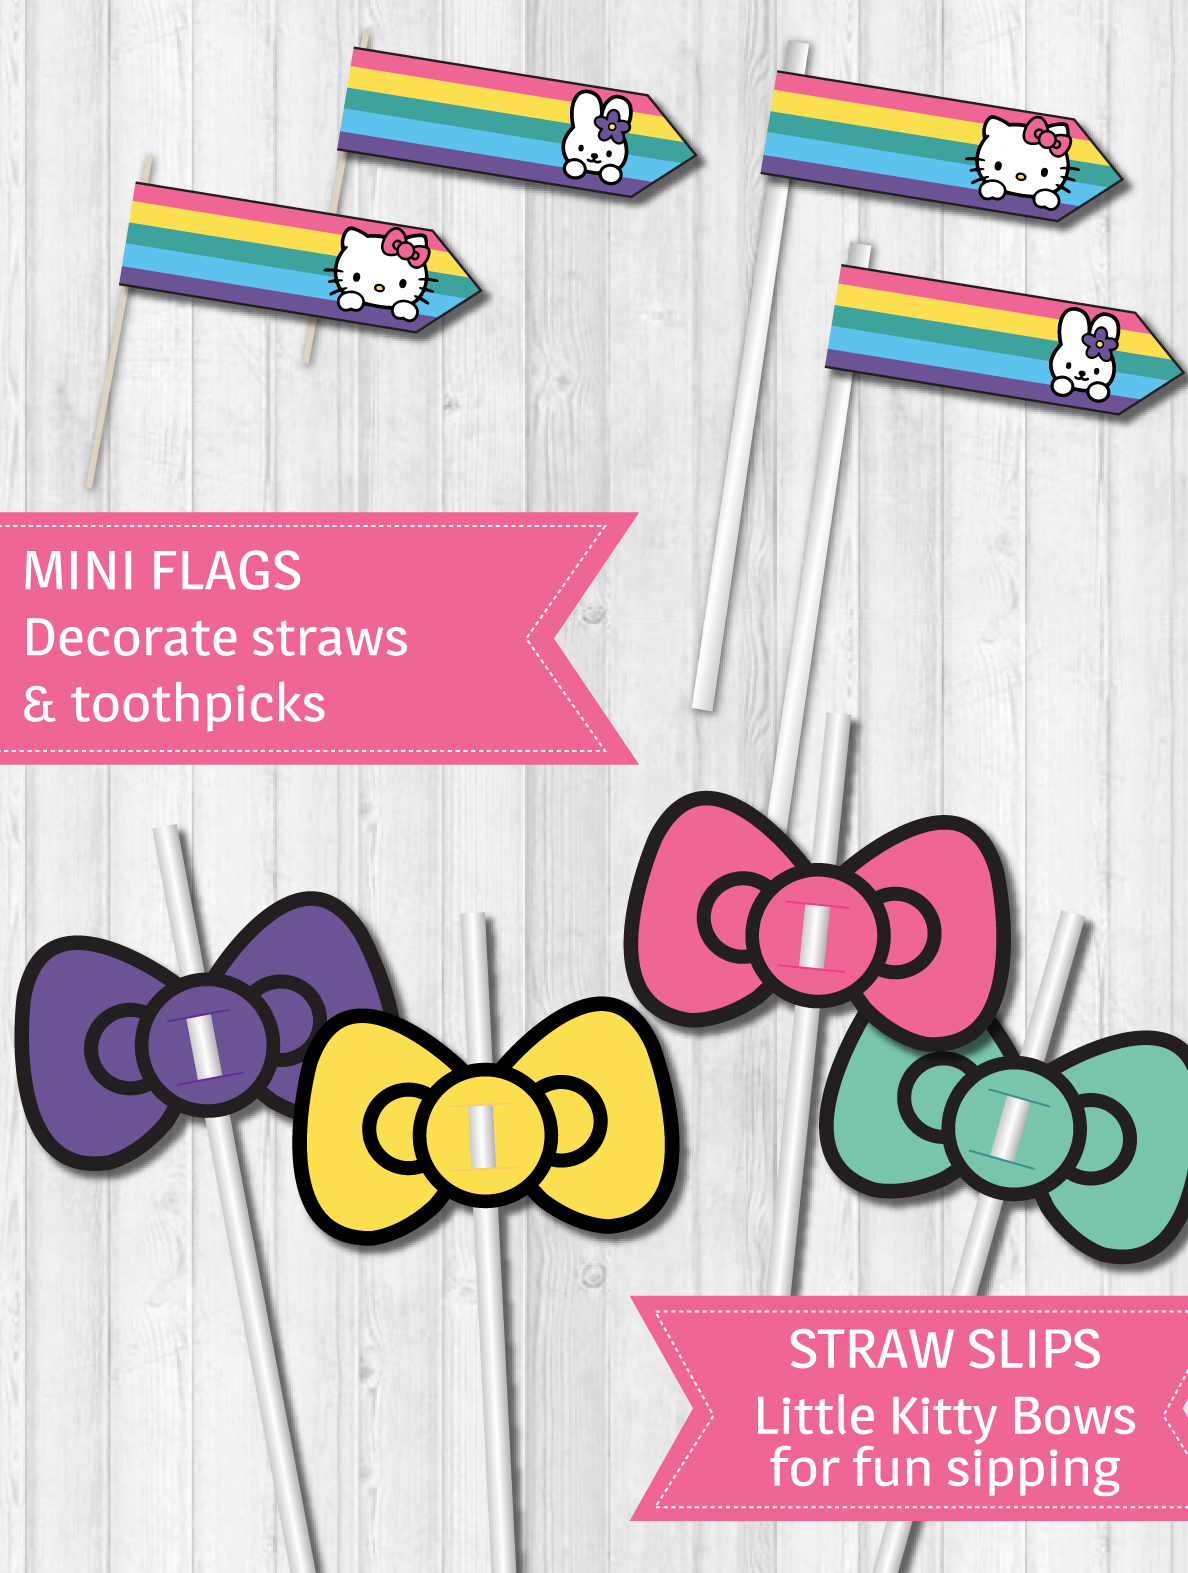 Transparent hello kitty bow clipart - Hello Kitty Party Decor Pack